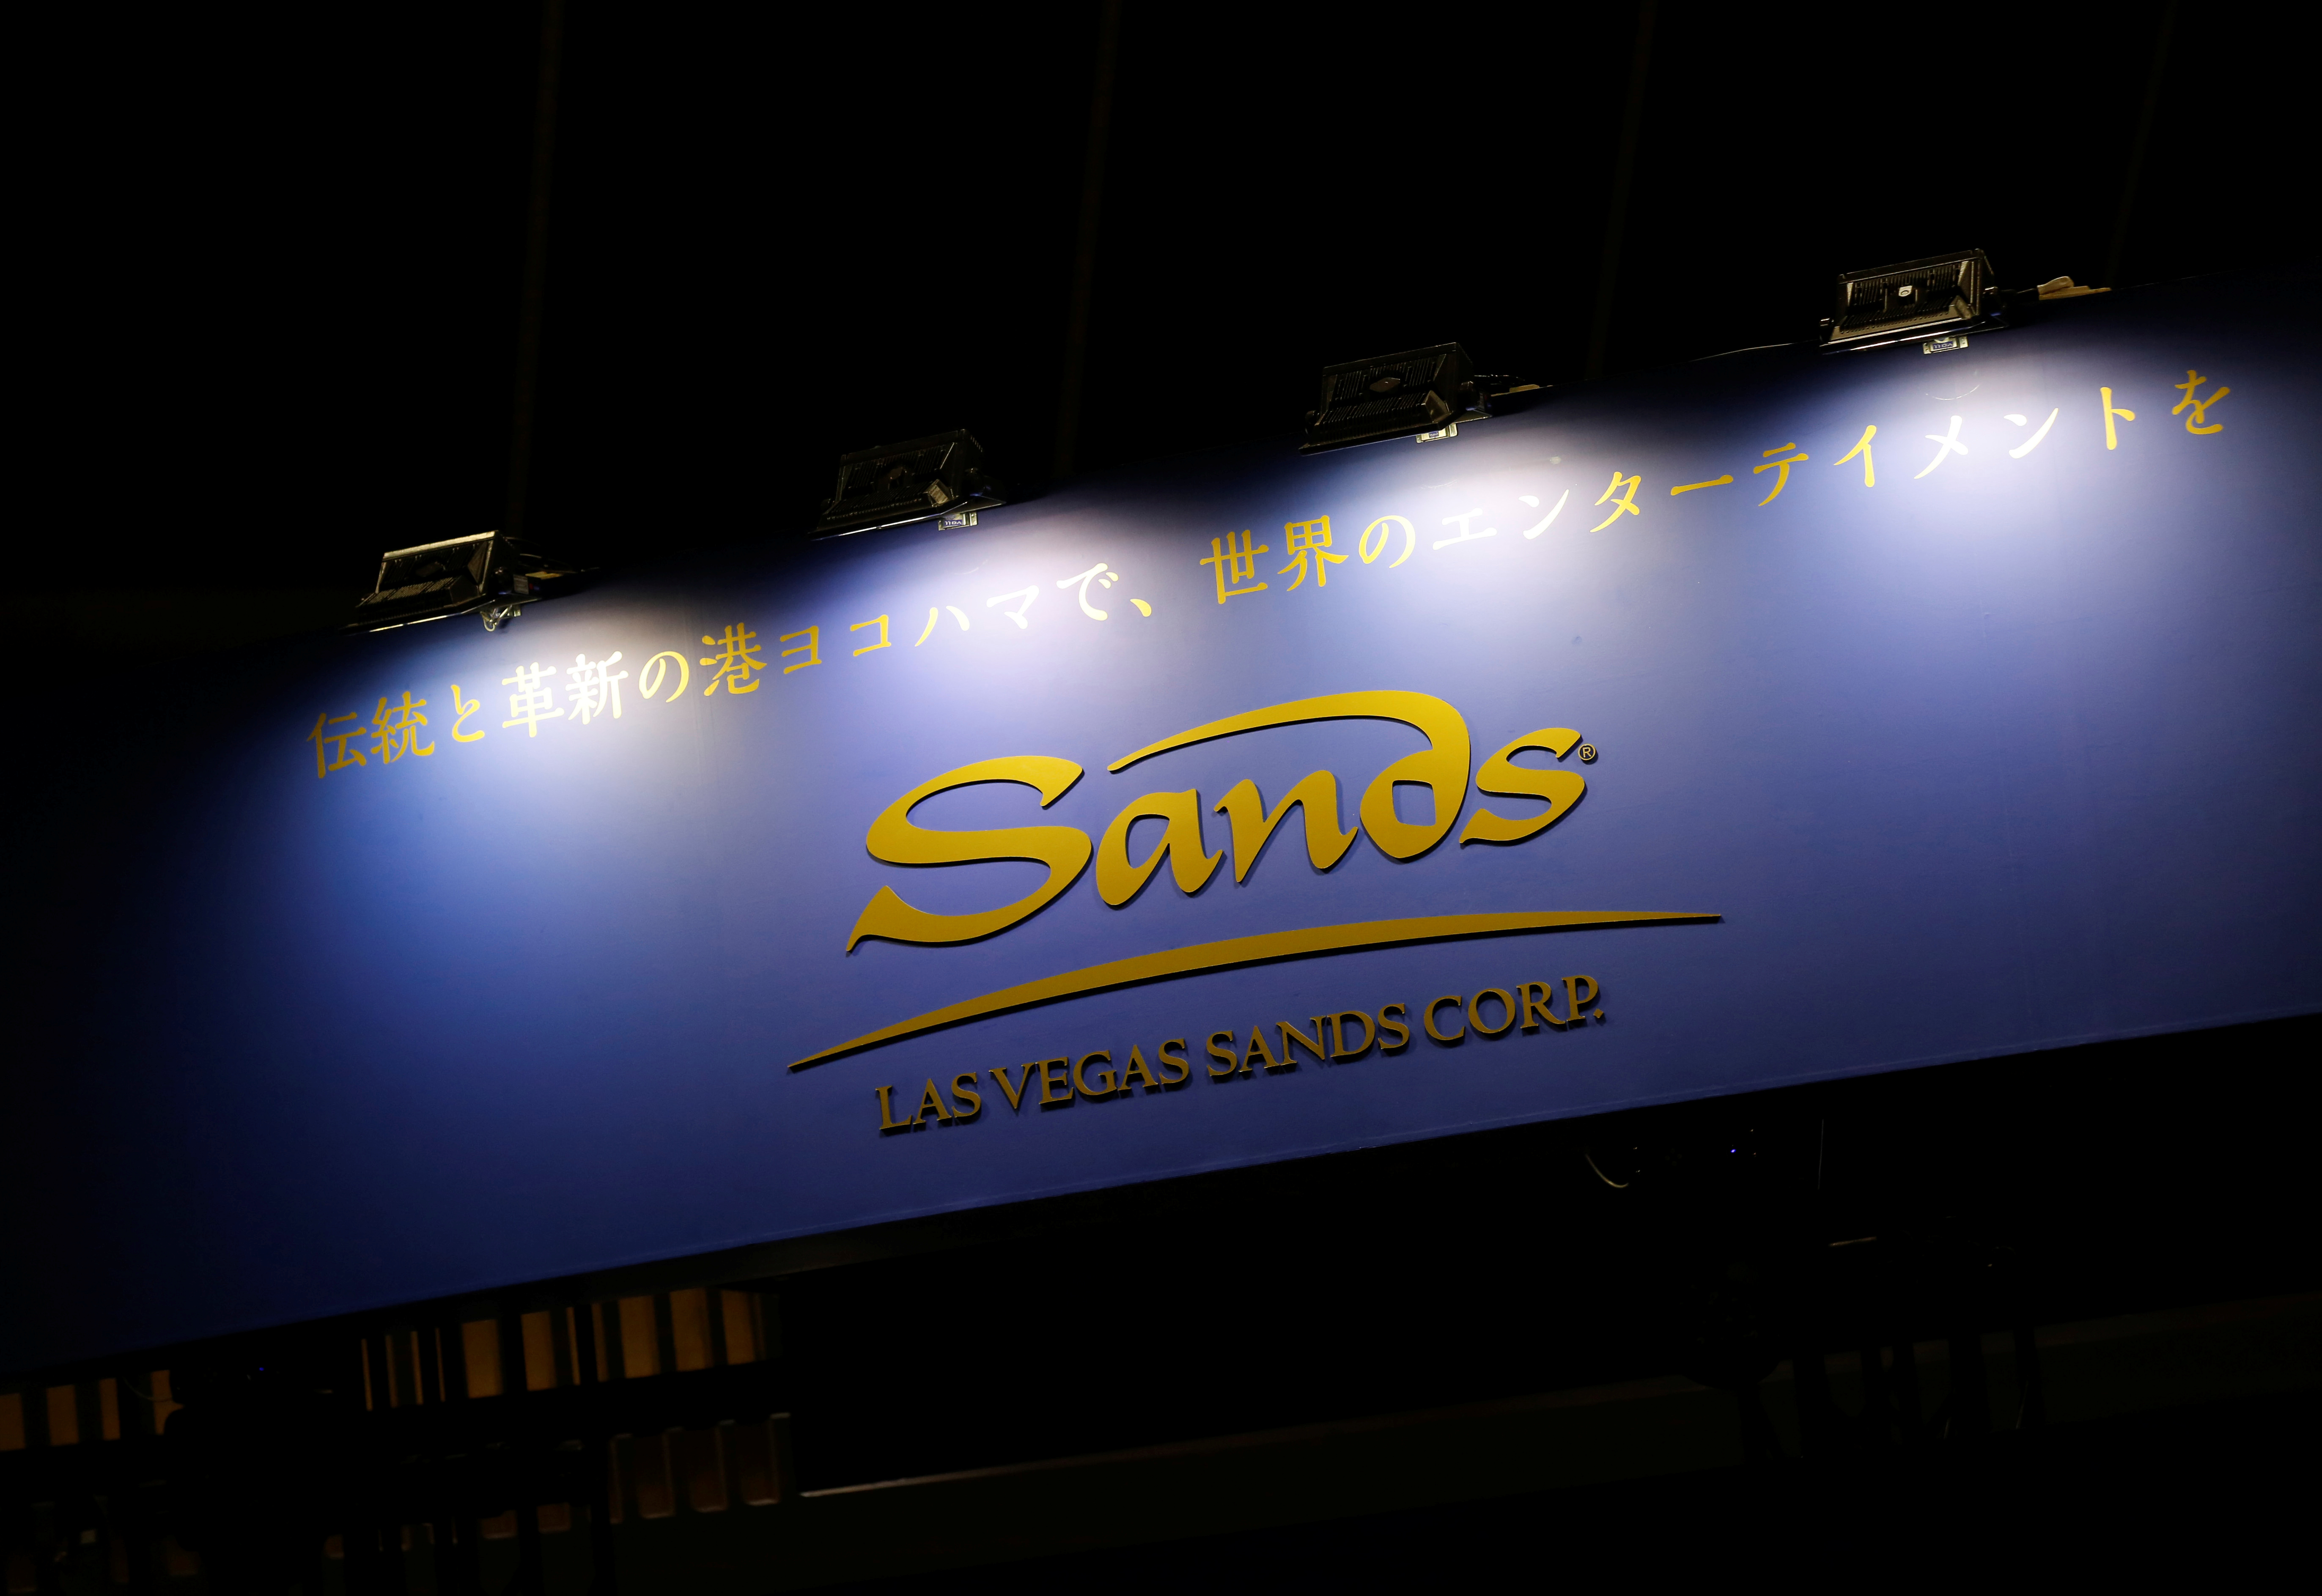 The logo of Las Vegas Sands Corp is pictured at the Japan IR EXPO in Yokohama, Japan January 29, 2020. REUTERS/Kim Kyung-Hoon